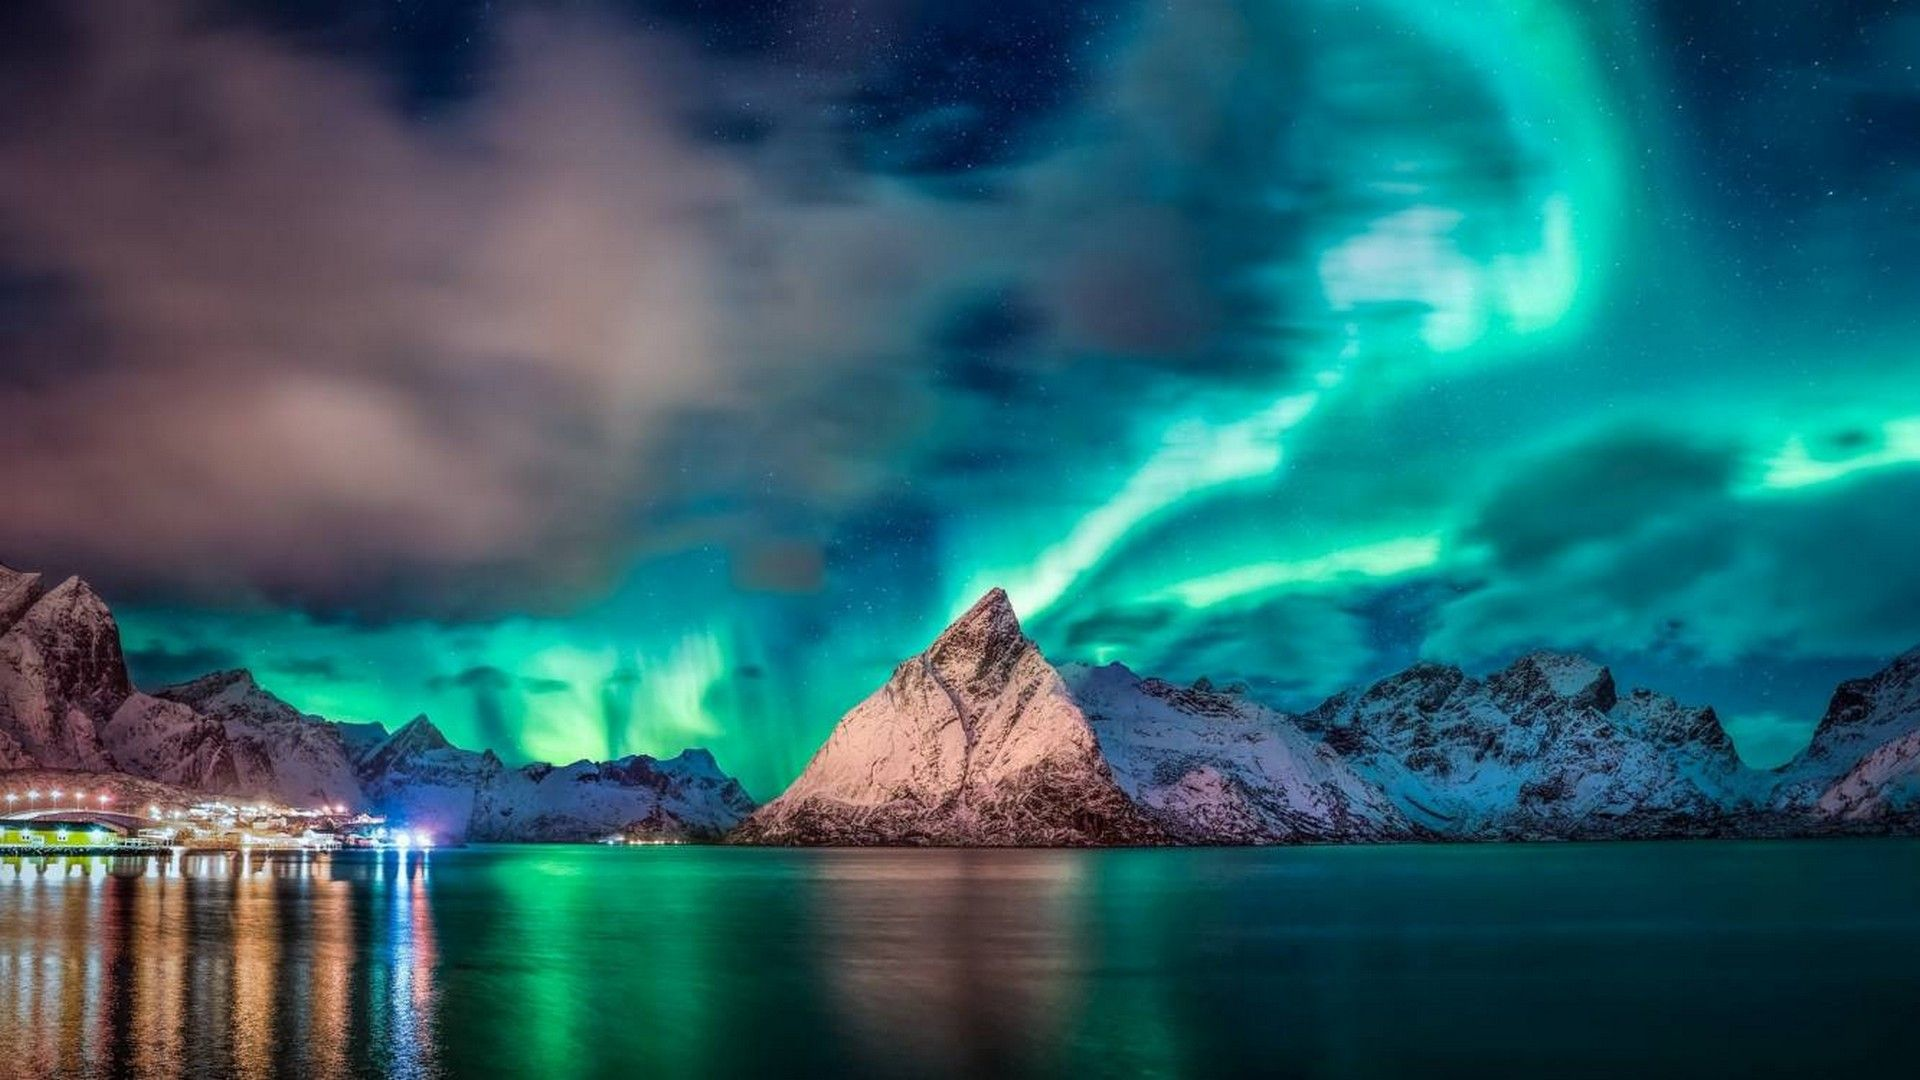 Aurora HD Wallpaper Night skies, Live wallpapers, Hd